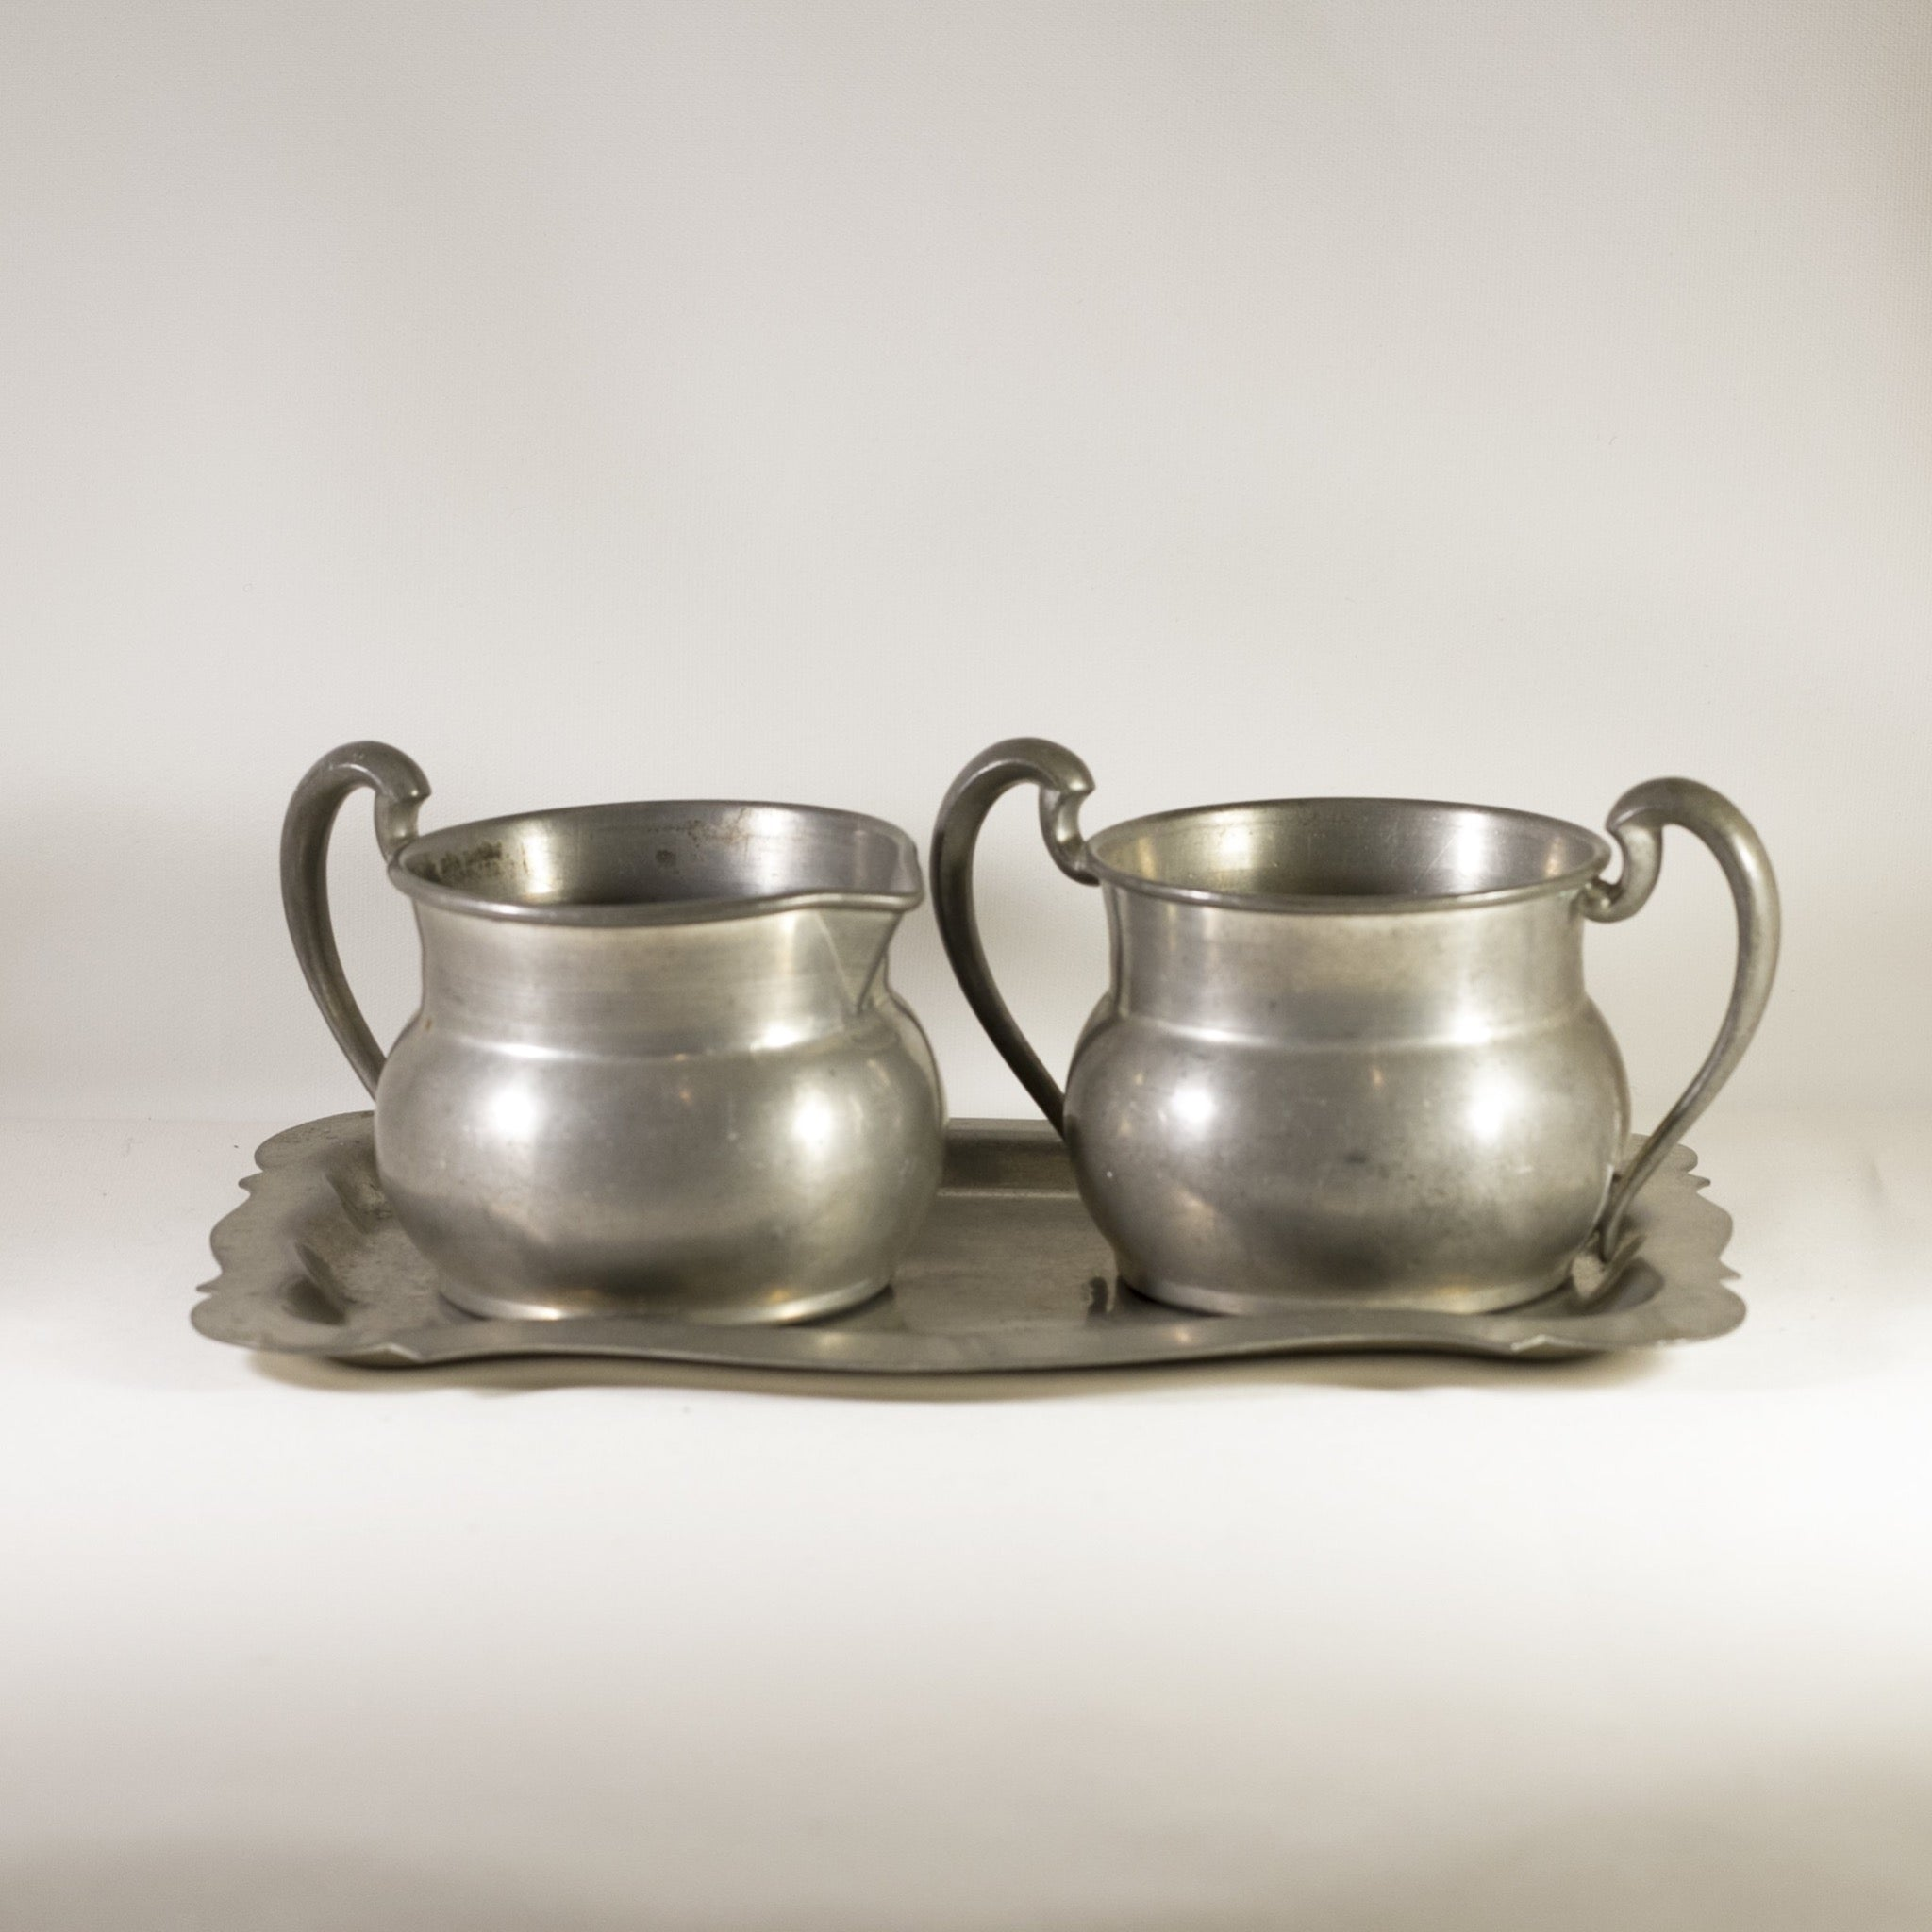 SOLID PEWTER Vintage Cream and Sugar Set with Underplate